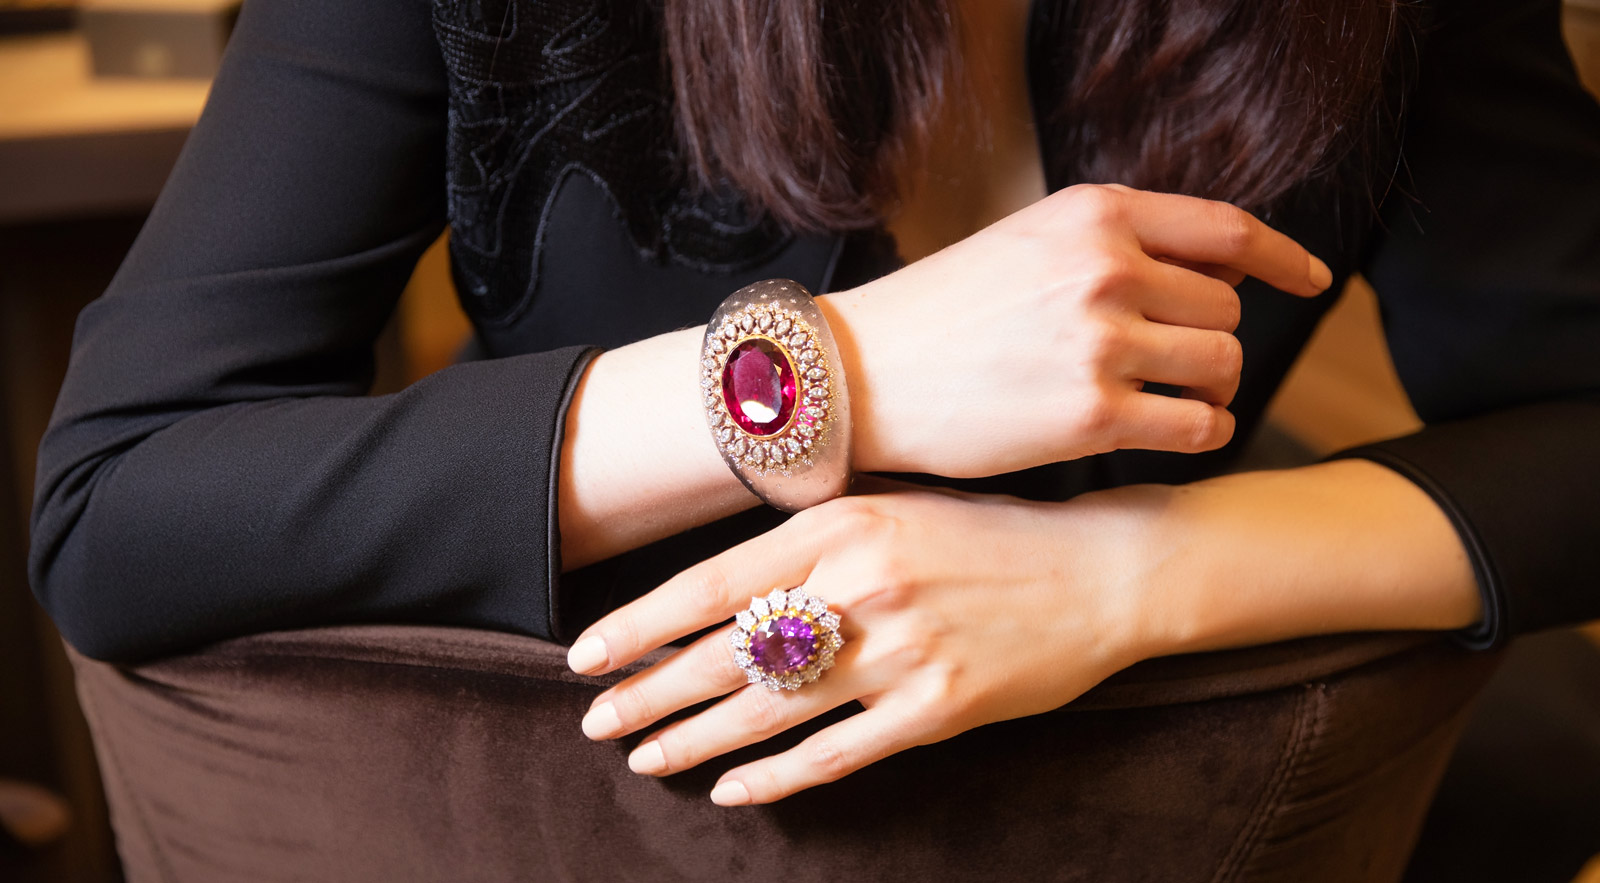 Buccellati rubellite cuff bracelet and kunzite ring. Photographer: Simon Martner